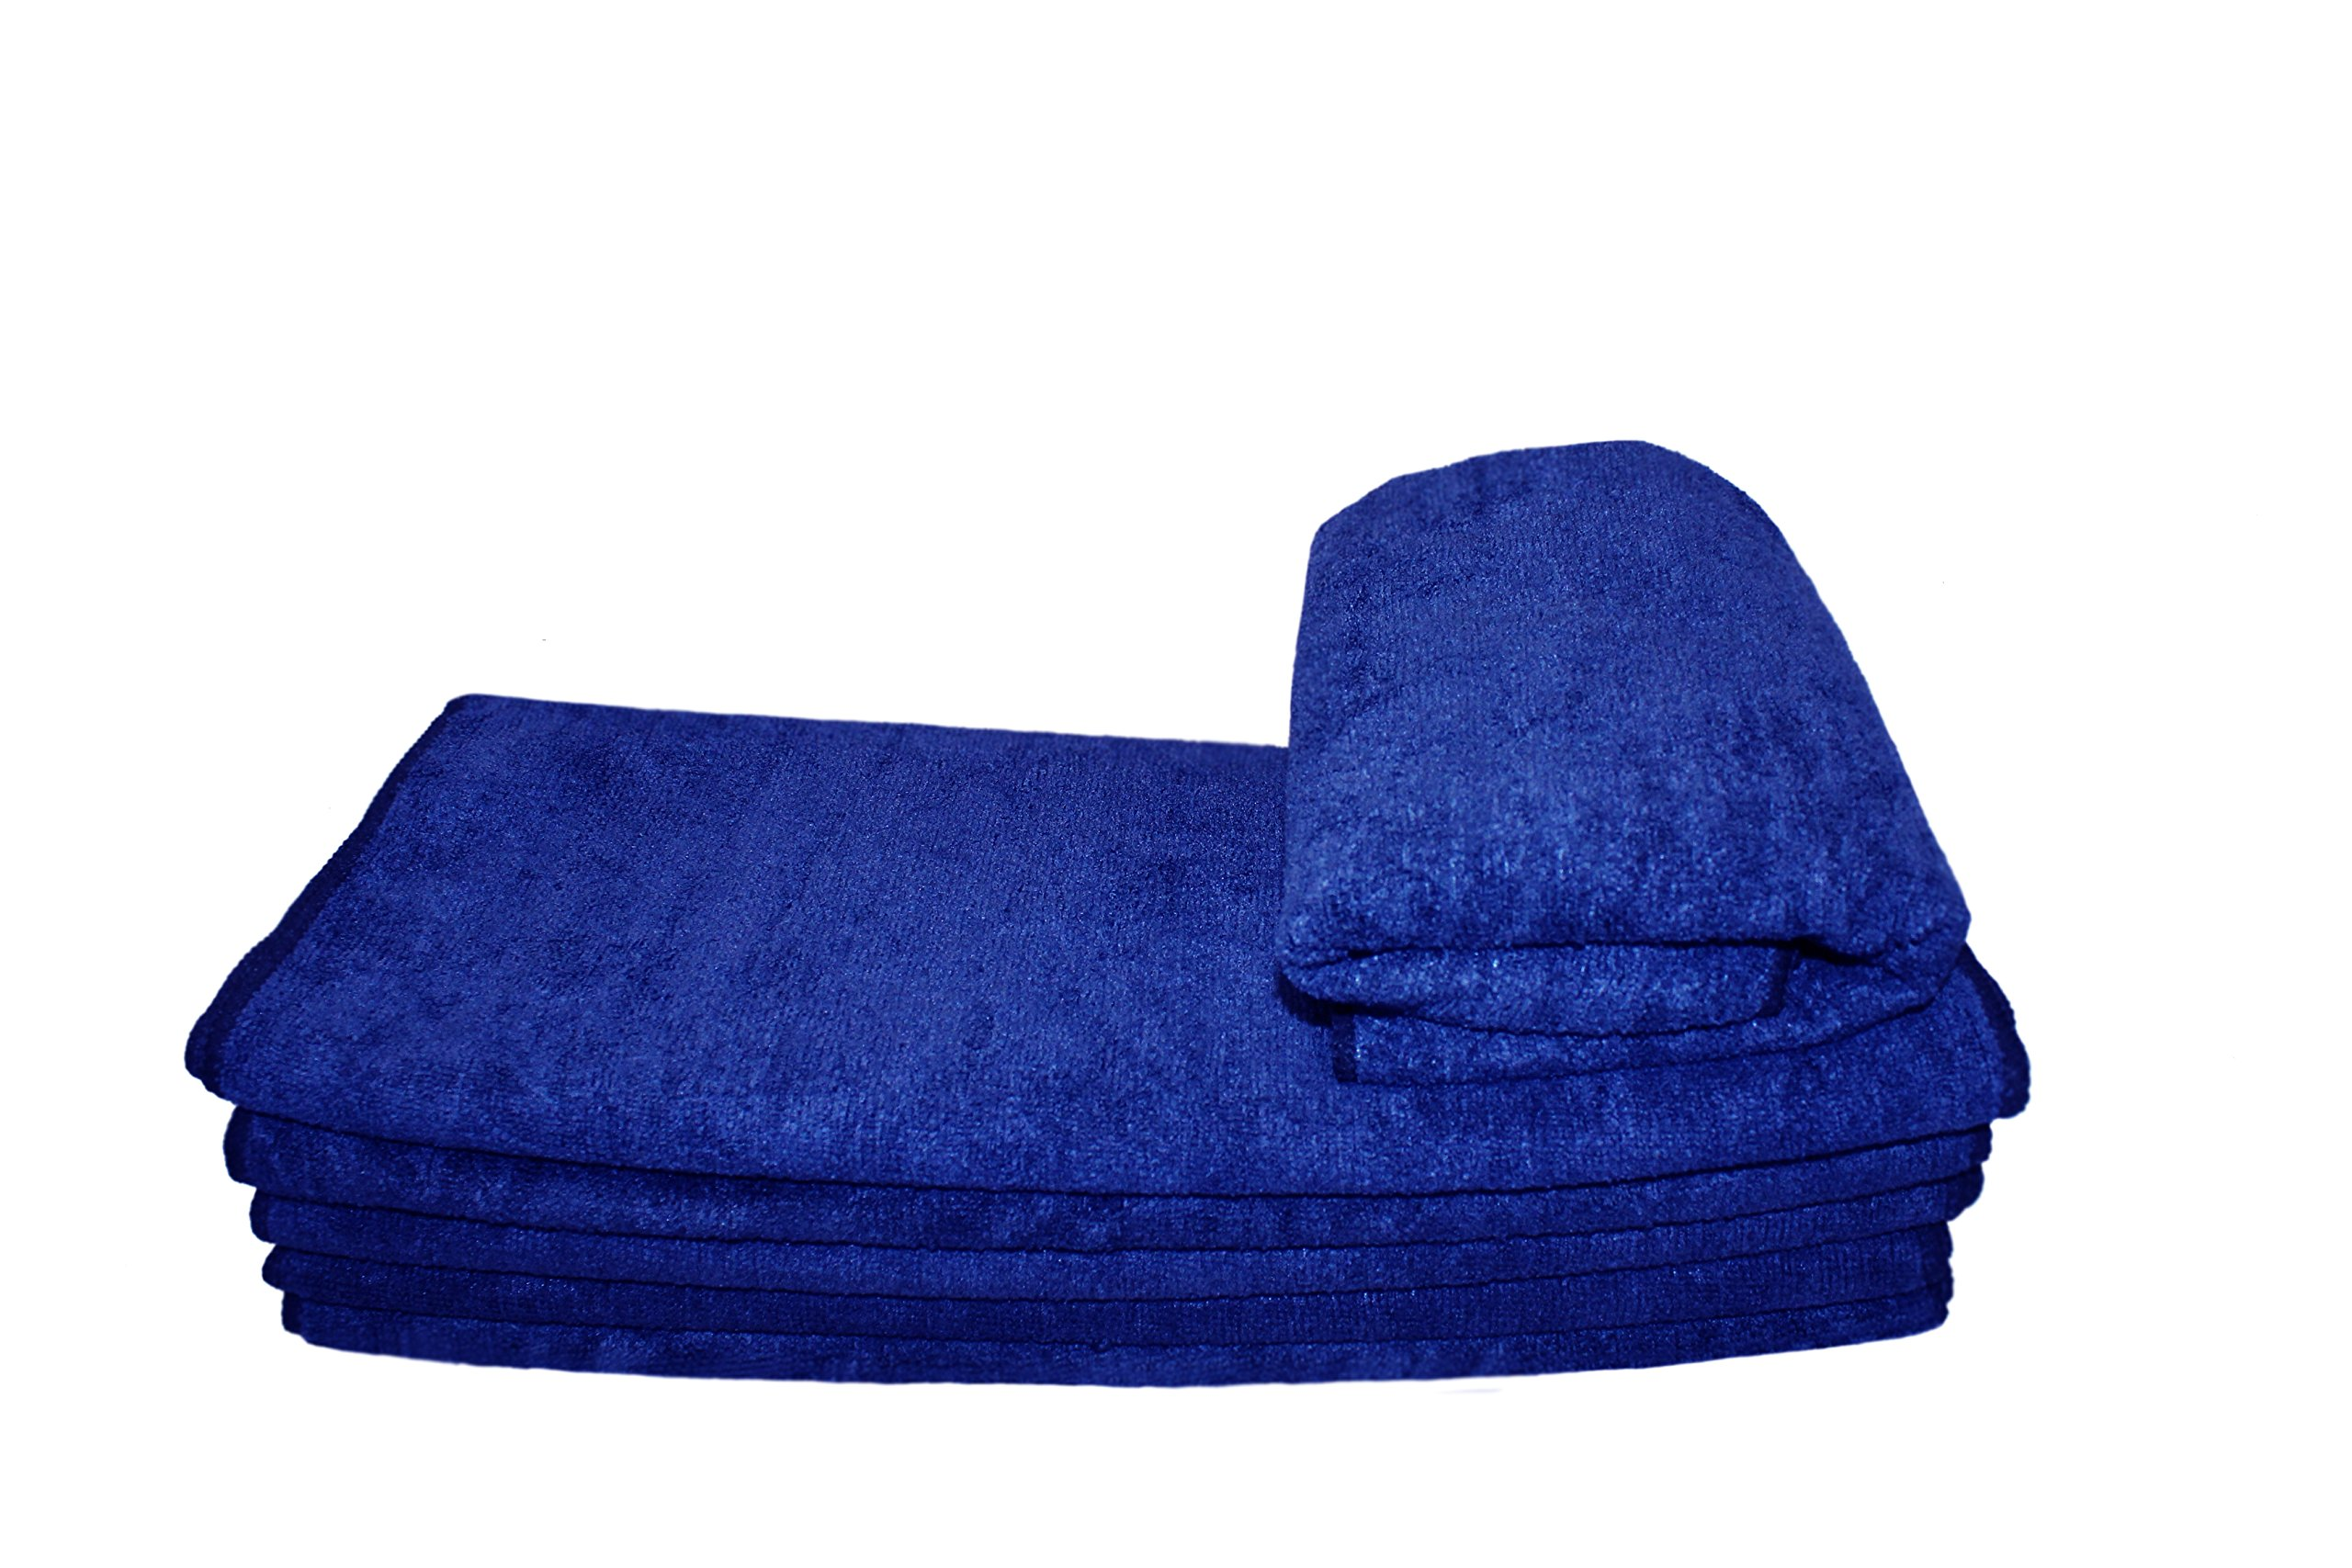 6 DOZEN 72pcs Premium Microfiber Towel 16'' X 27'' - Royal Blue